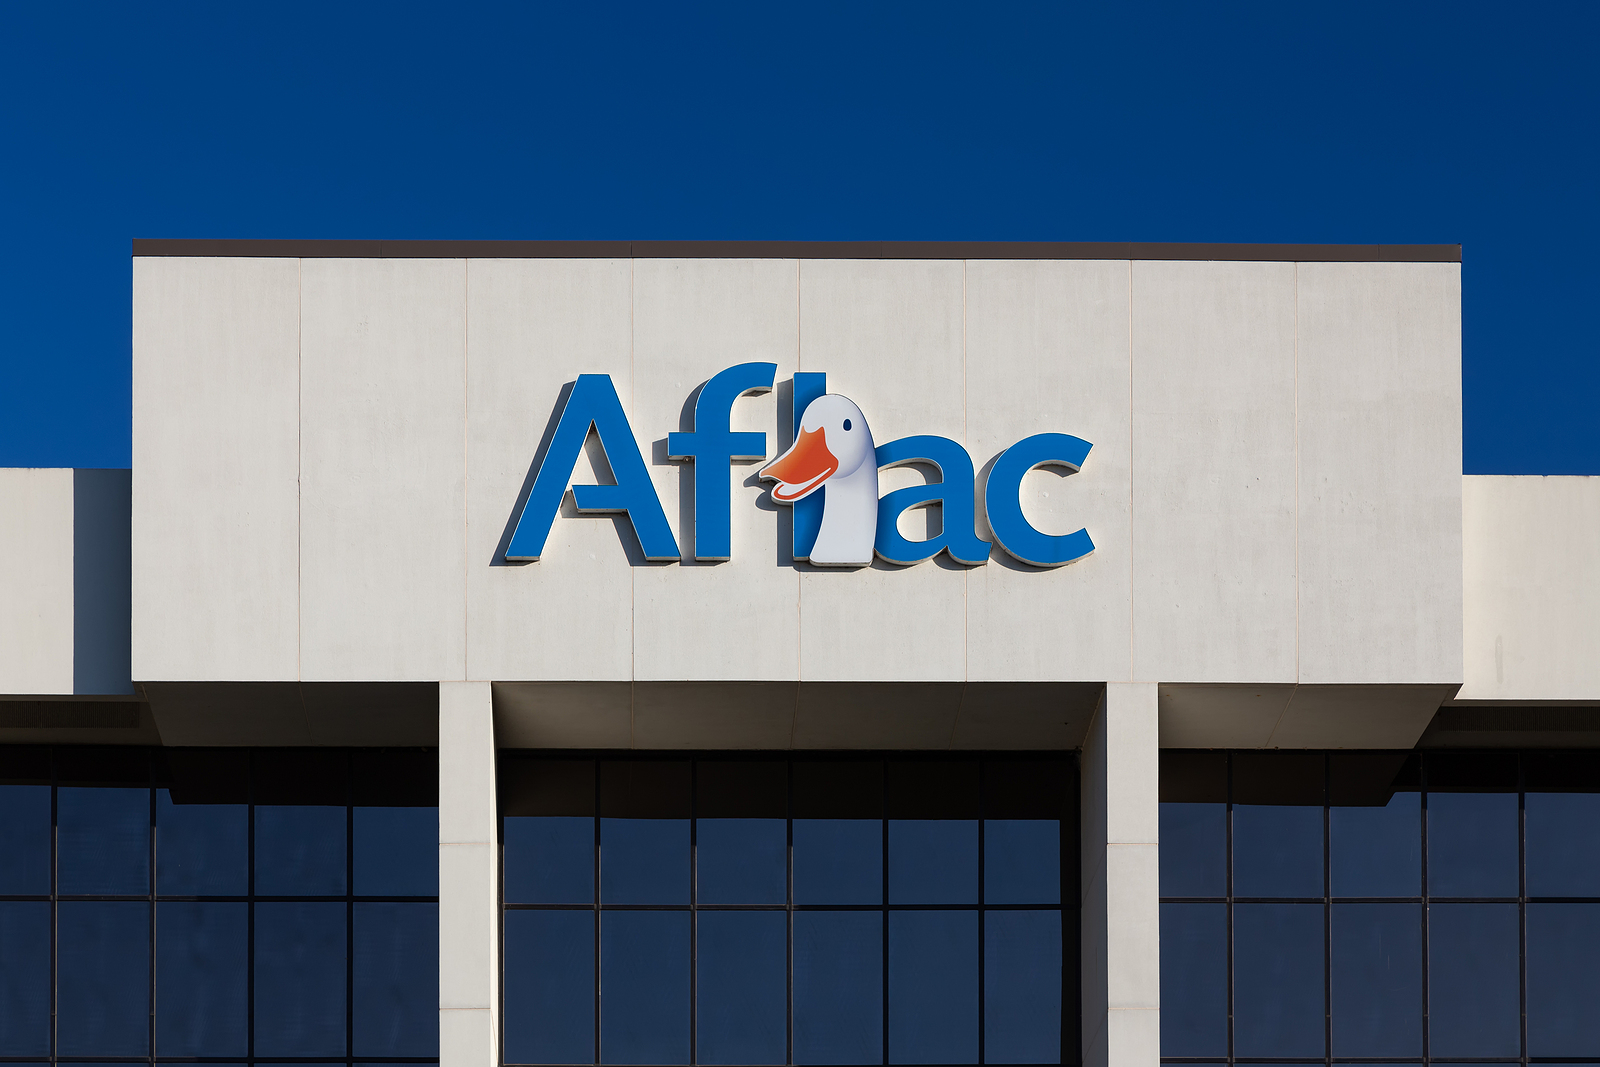 AFLAC AFL stock news and analysis